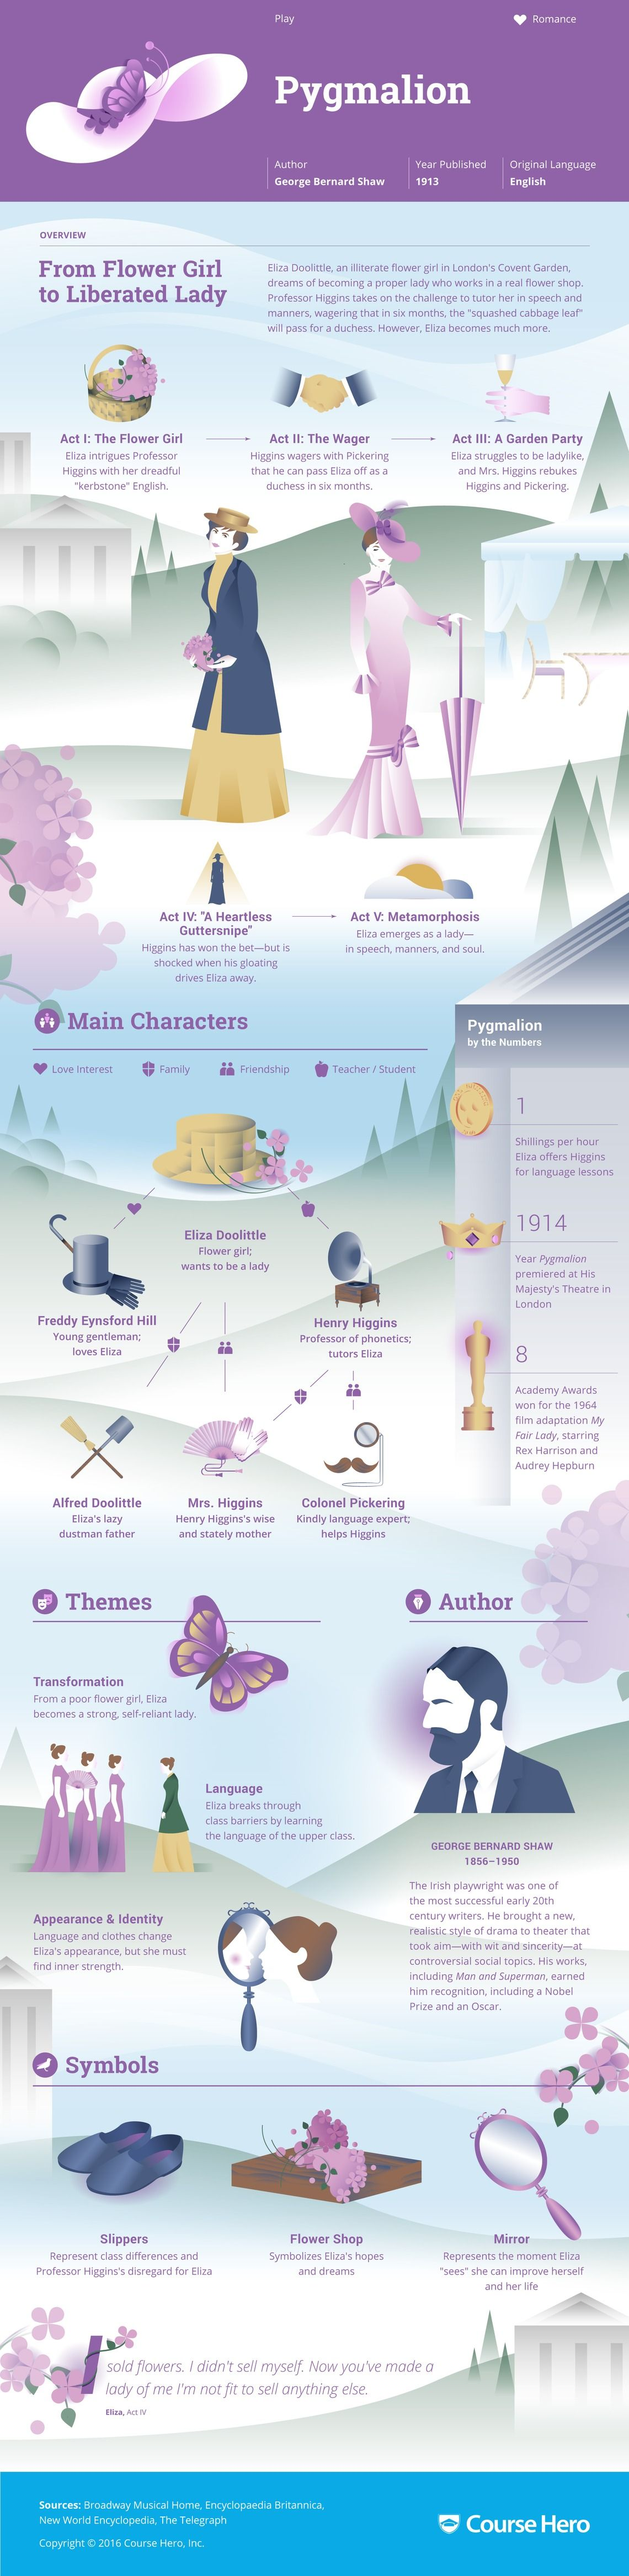 Pygmalion infographic course hero workers in literature 81420b1e8d27b3213179235ae567b172g buycottarizona